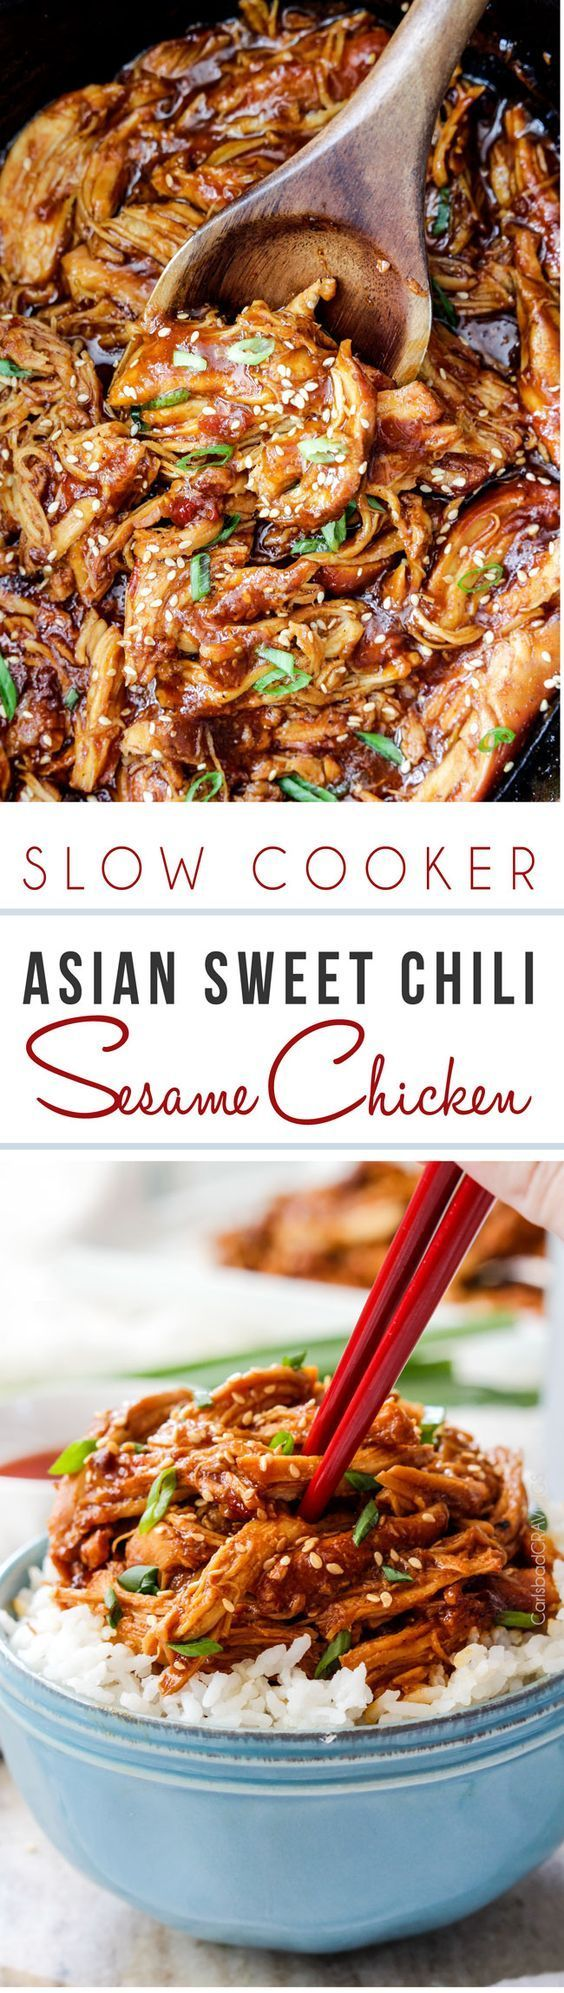 Asian Sweet Chili Chicken Slow Cooker Recipe | The WHOot